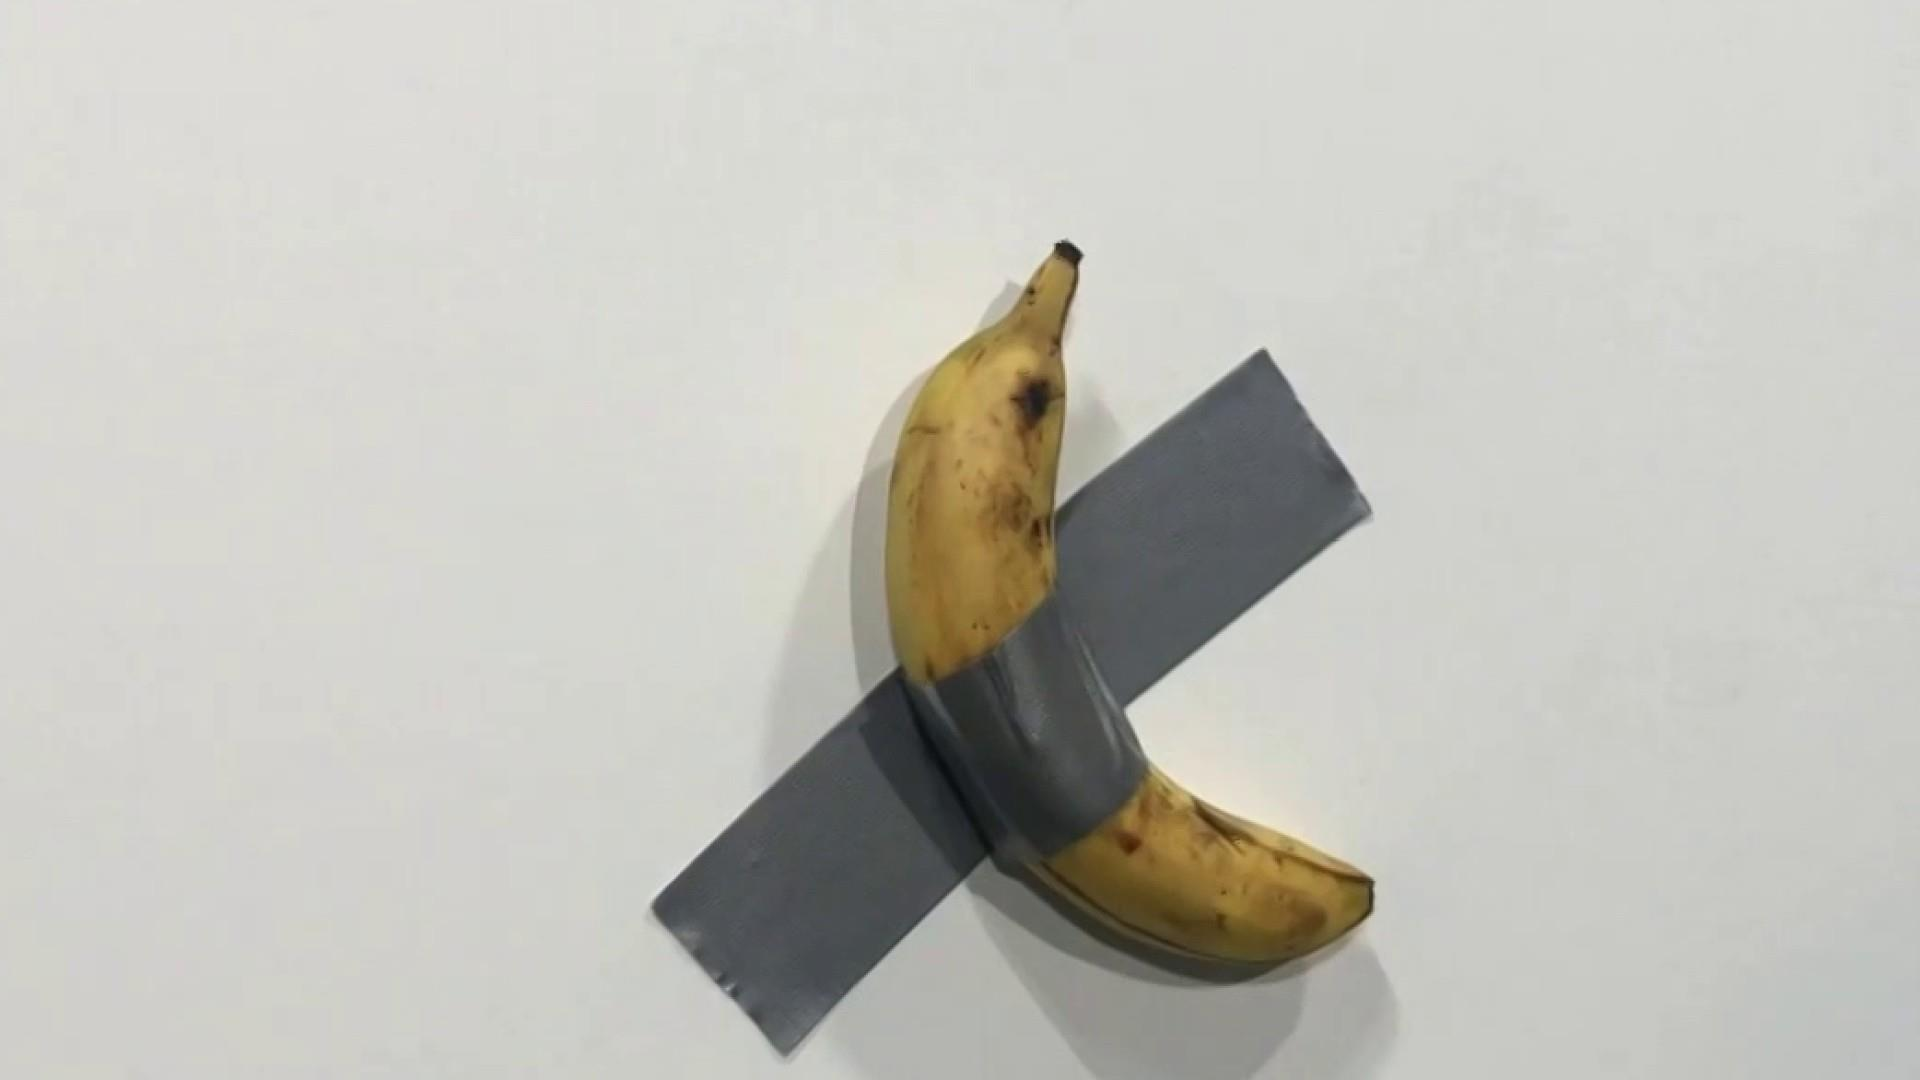 Artist sells banana duct-taped to wall for $120,000 at Art Basel in Miami Beach